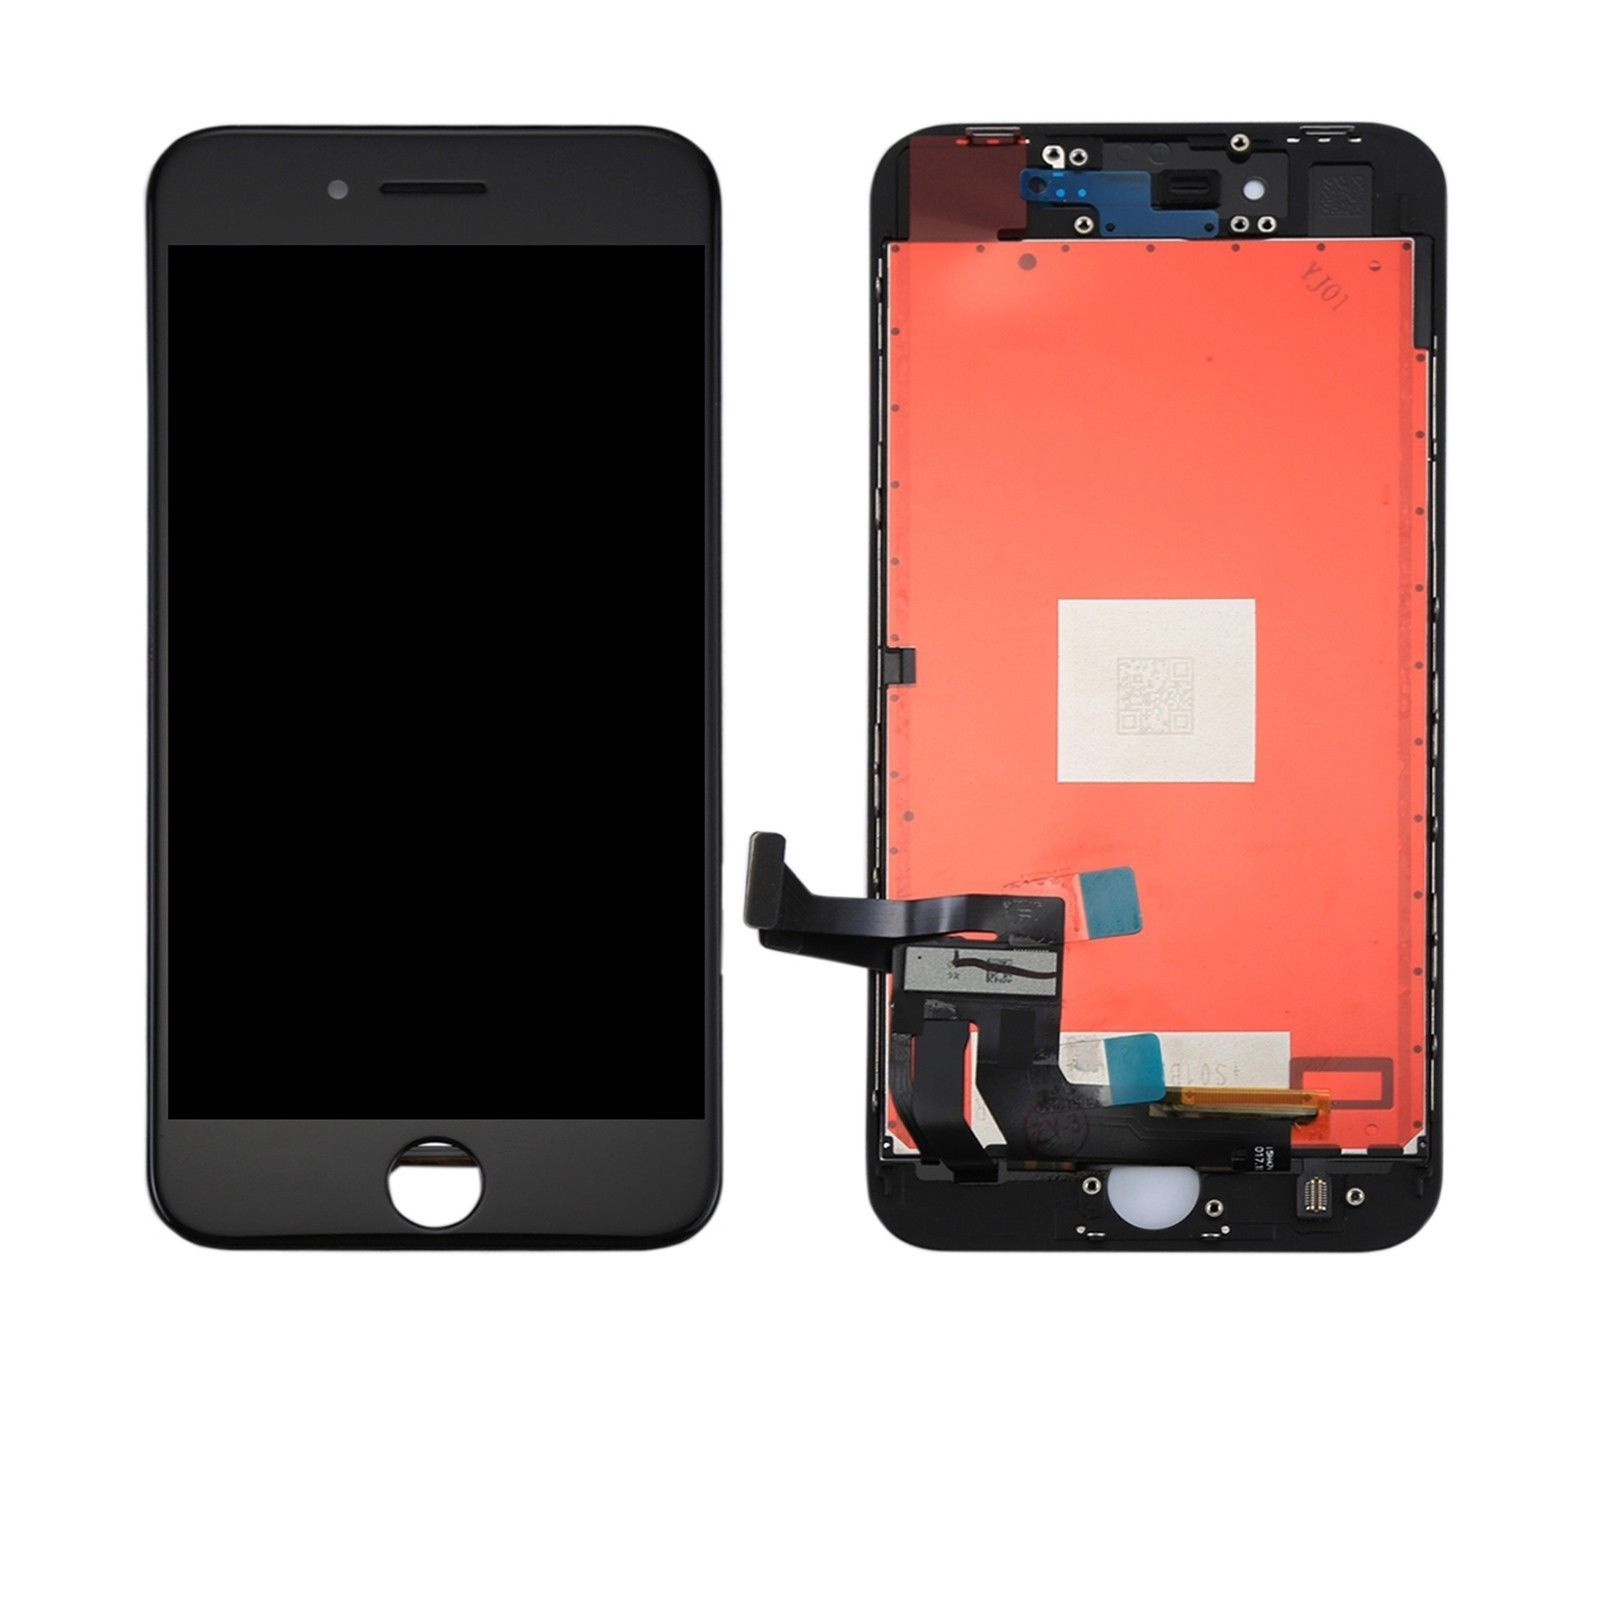 Touch screen lcd display frame nero per apple iphone 8 plus modello A1864 A1897 + biadesivo